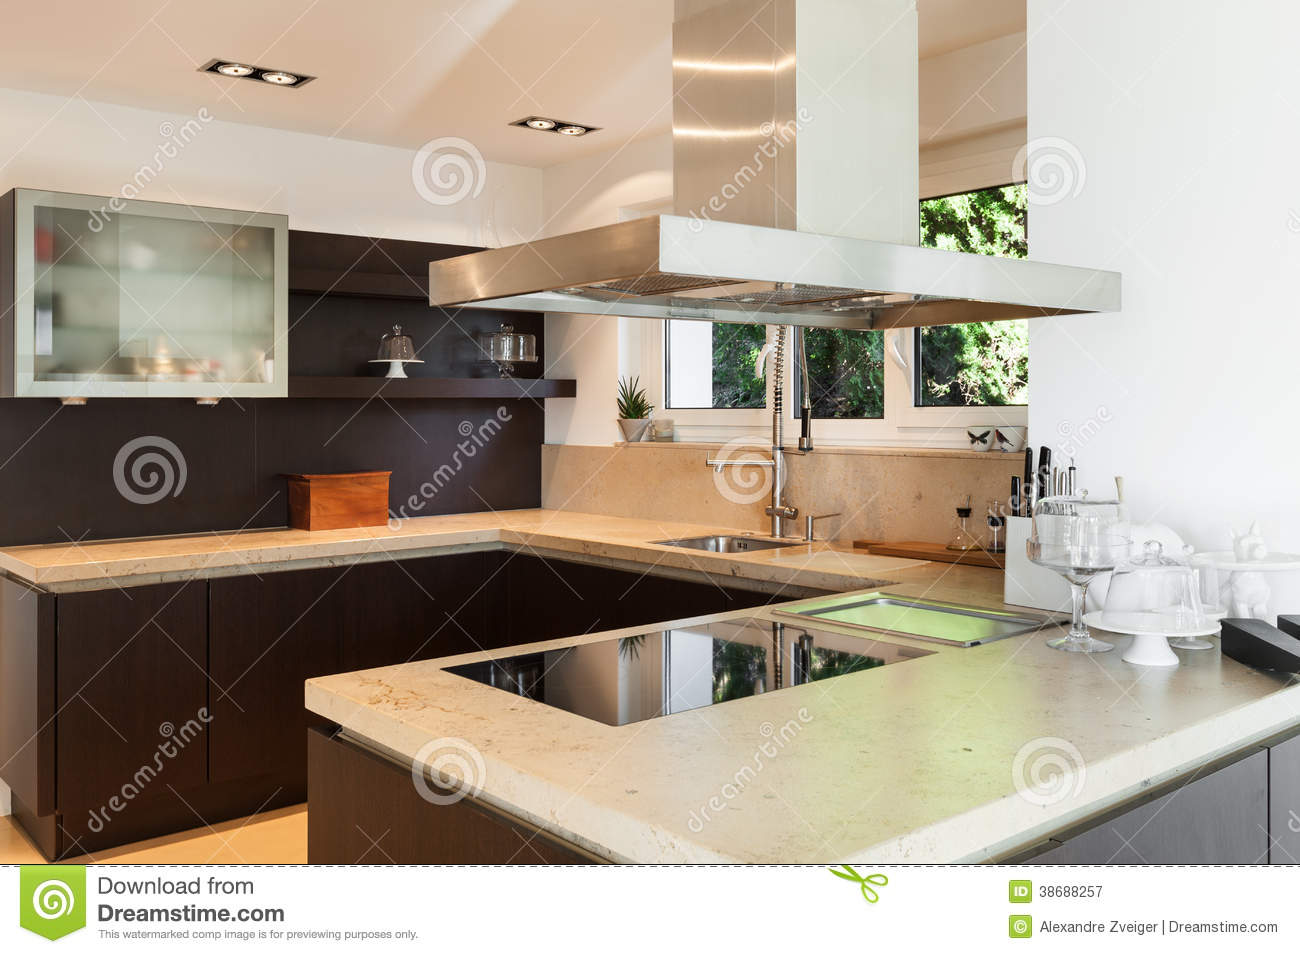 Beautiful house royalty free stock photography image 38688257 - Beautiful houses interior kitchen ...